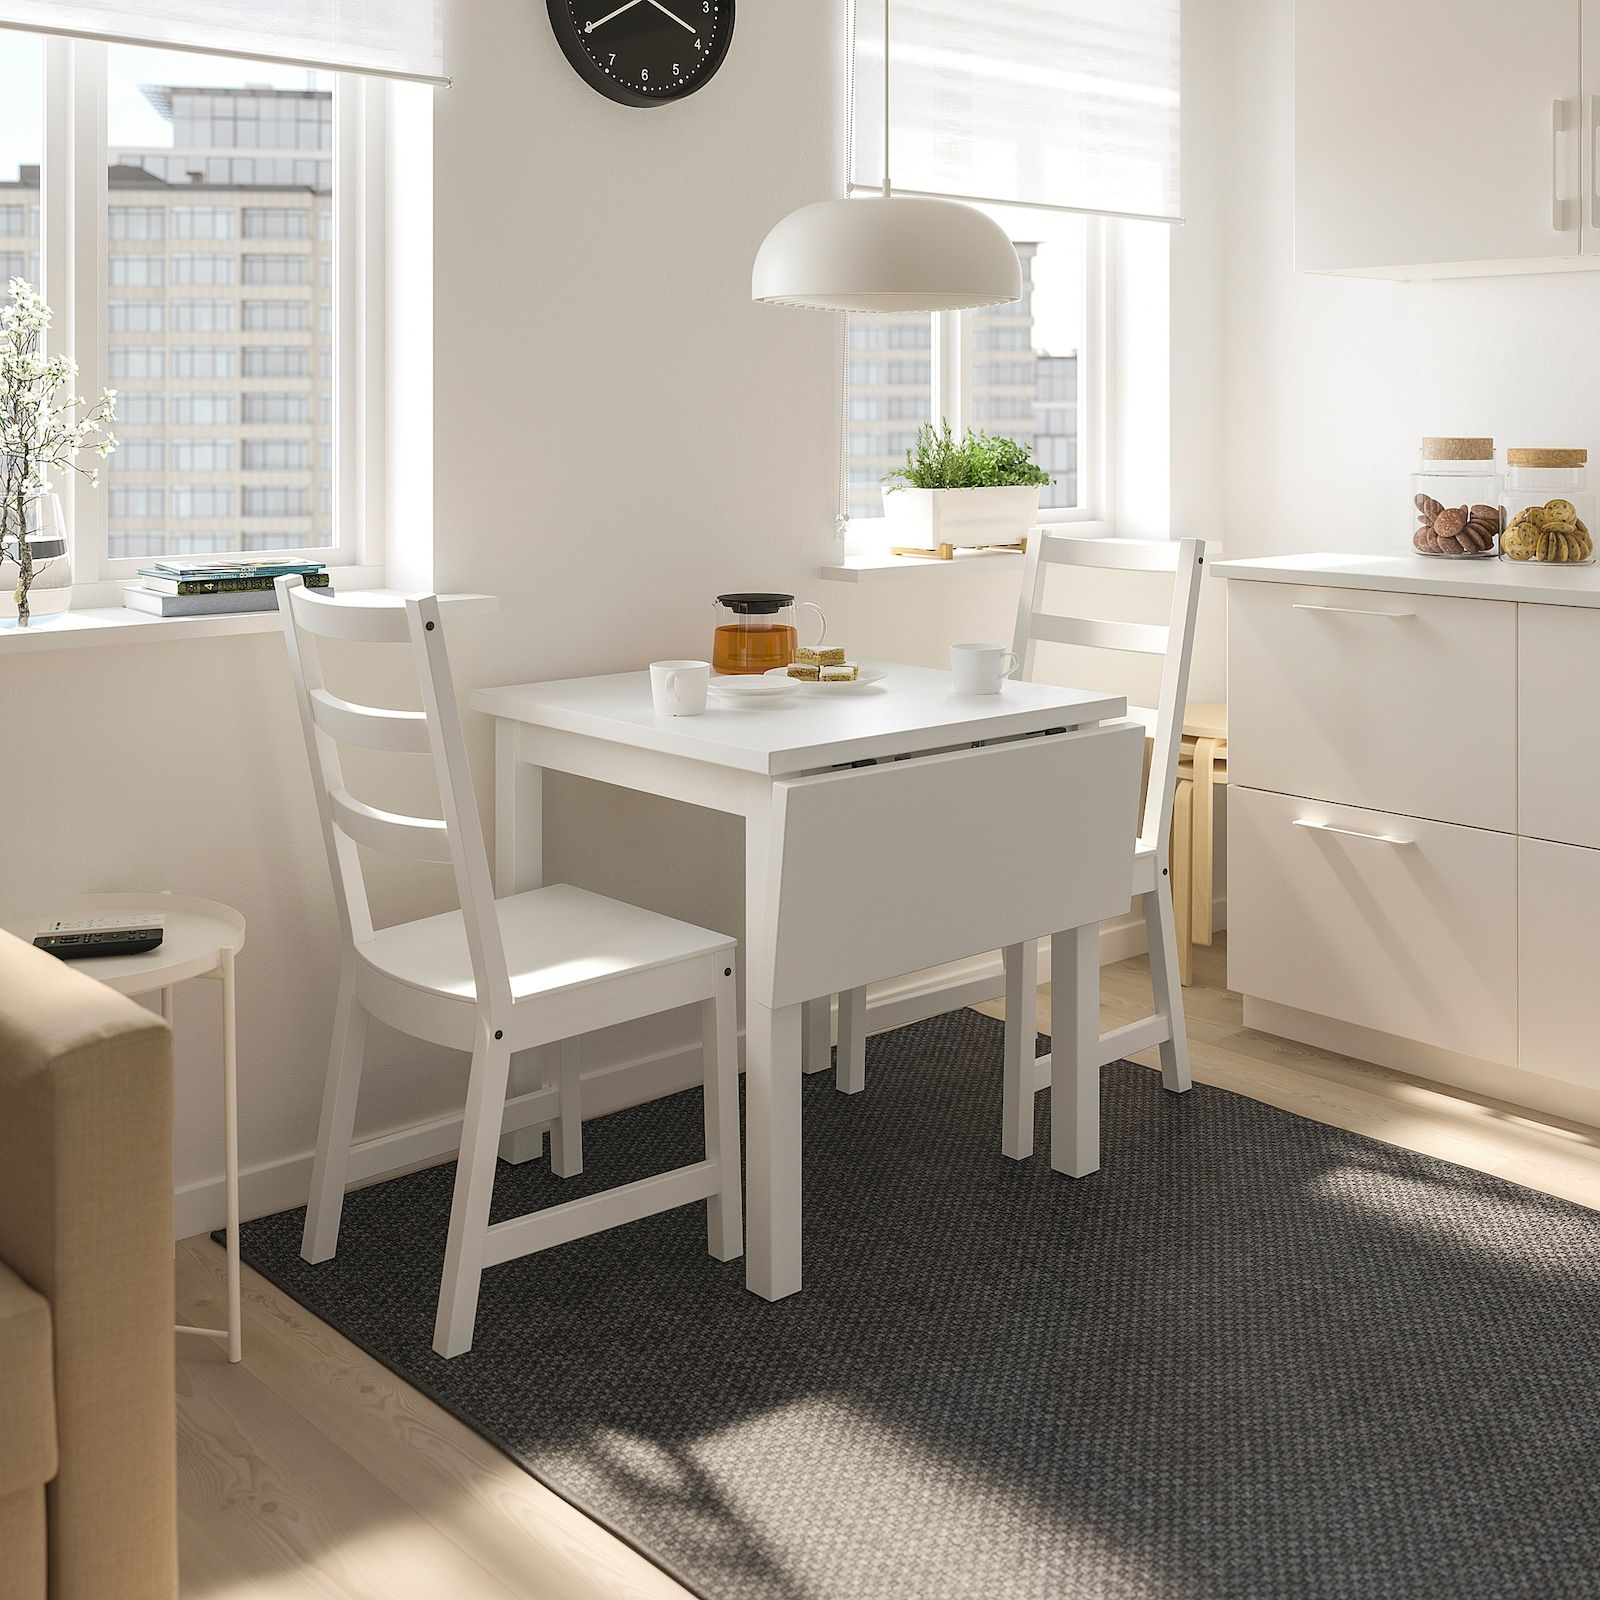 40+ Very small dining table for 2 Best Seller